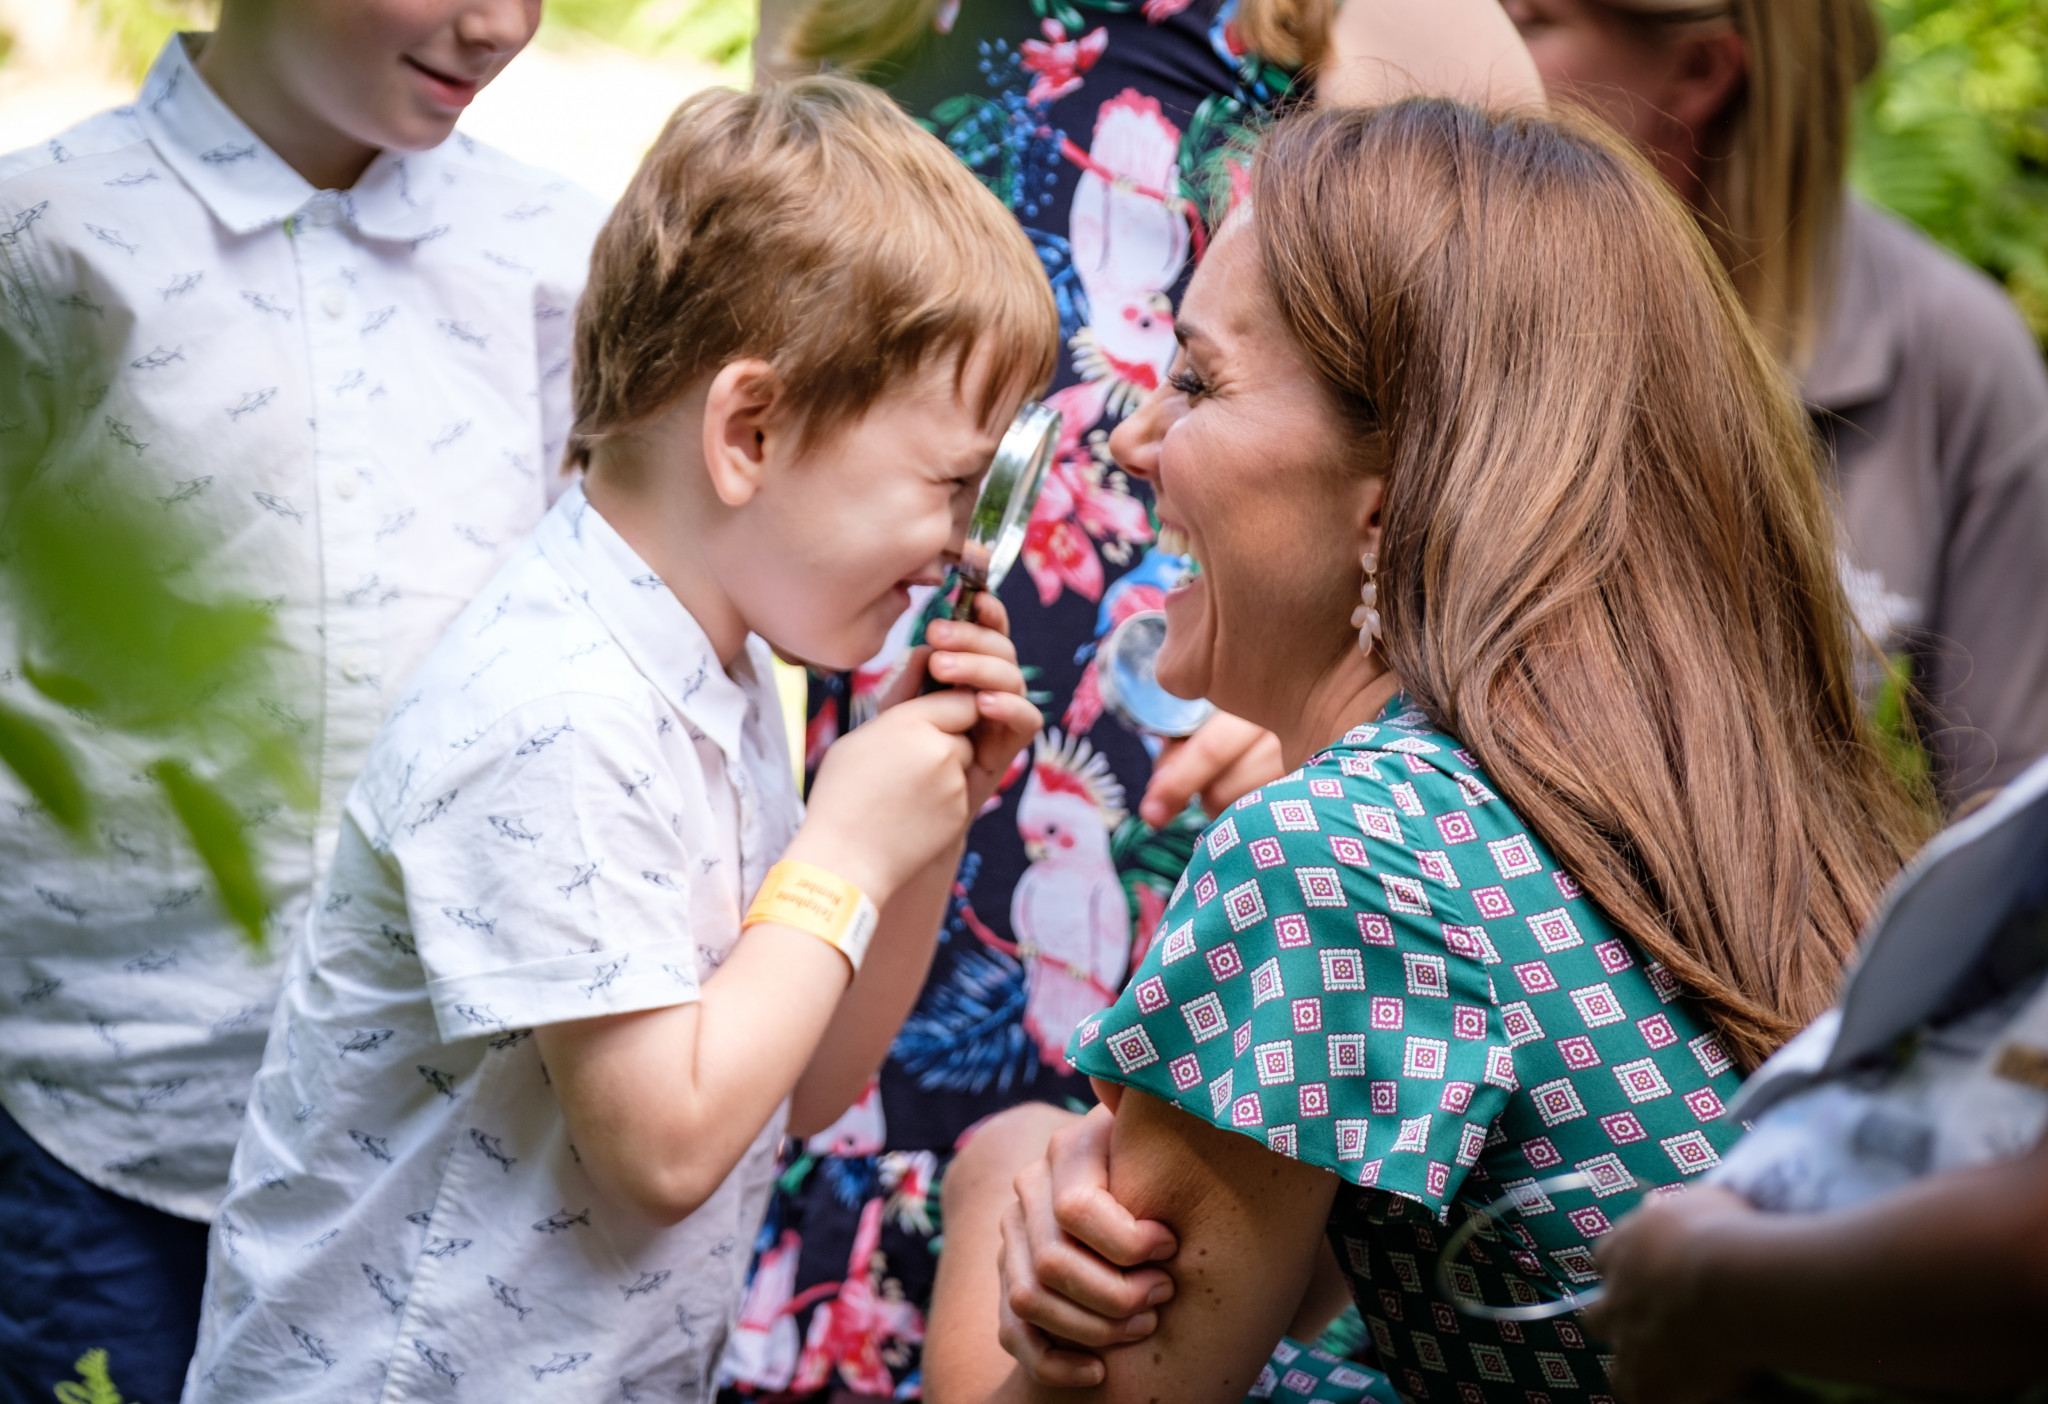 A photo of The Duchess of Cambridge and a little boy